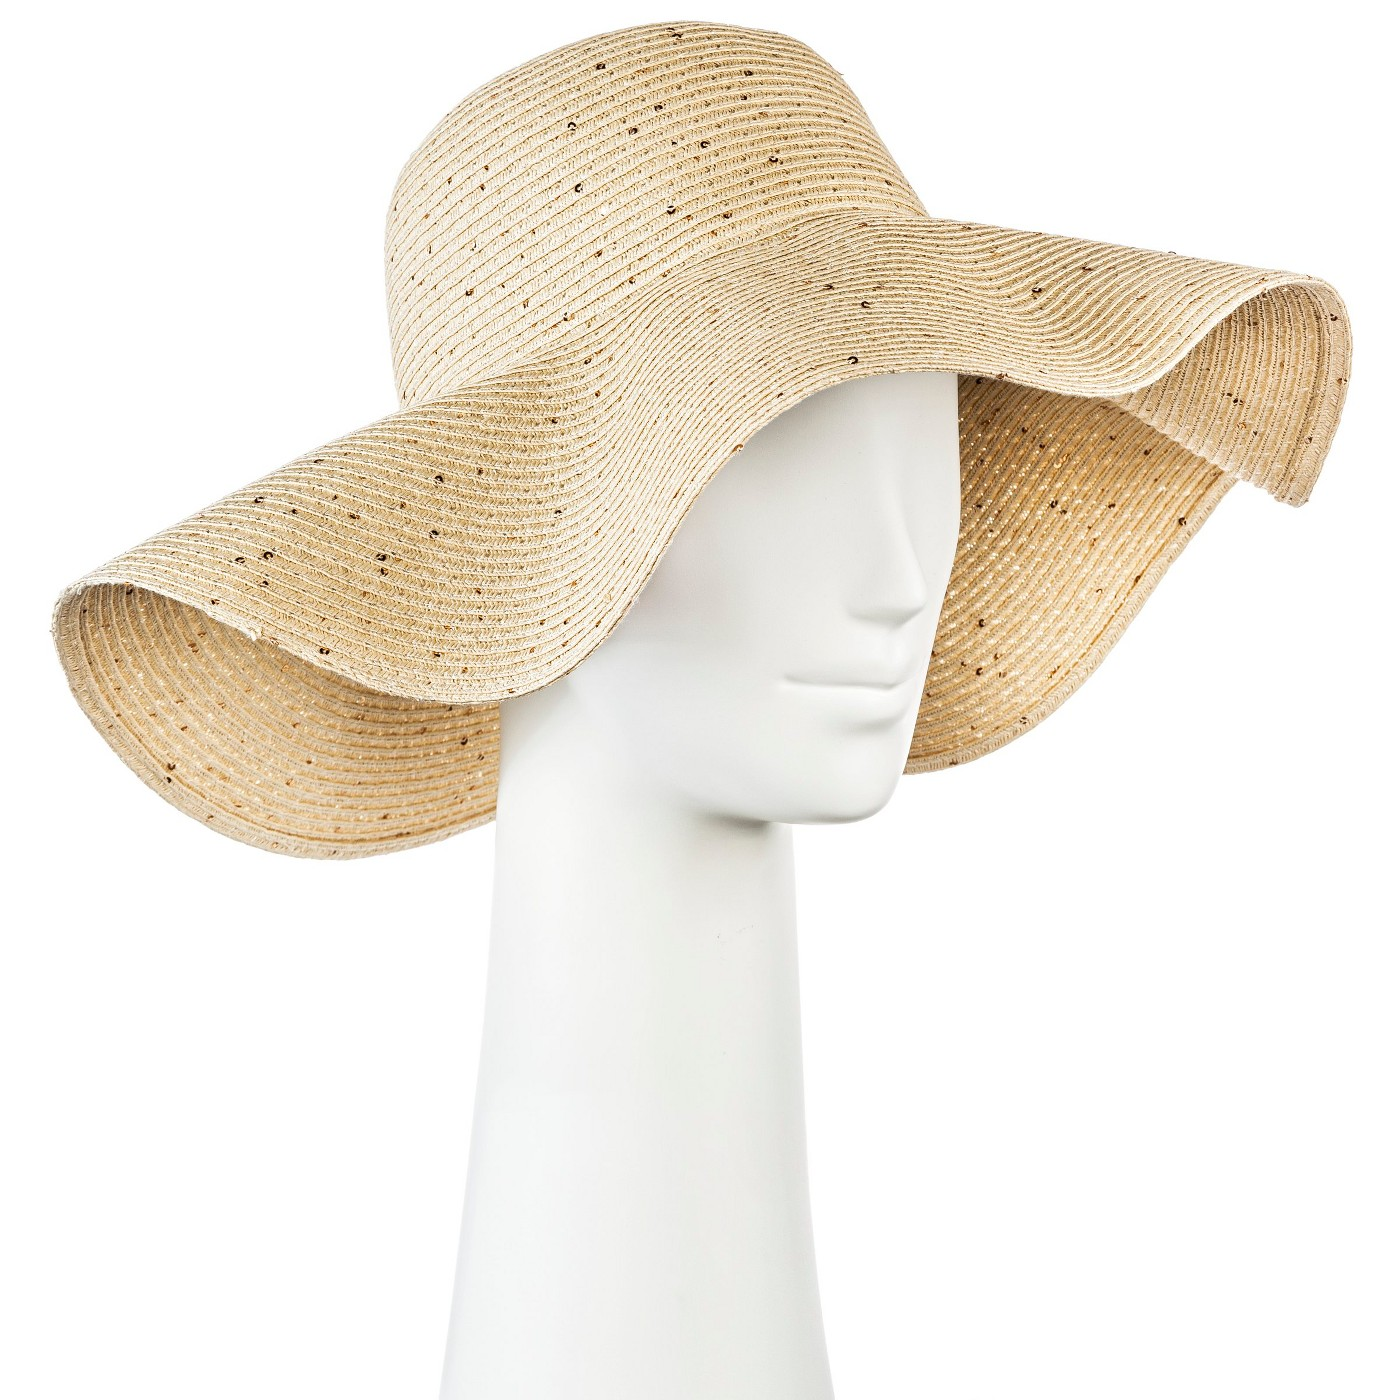 Floppy Straw Hat with Sequins  $15